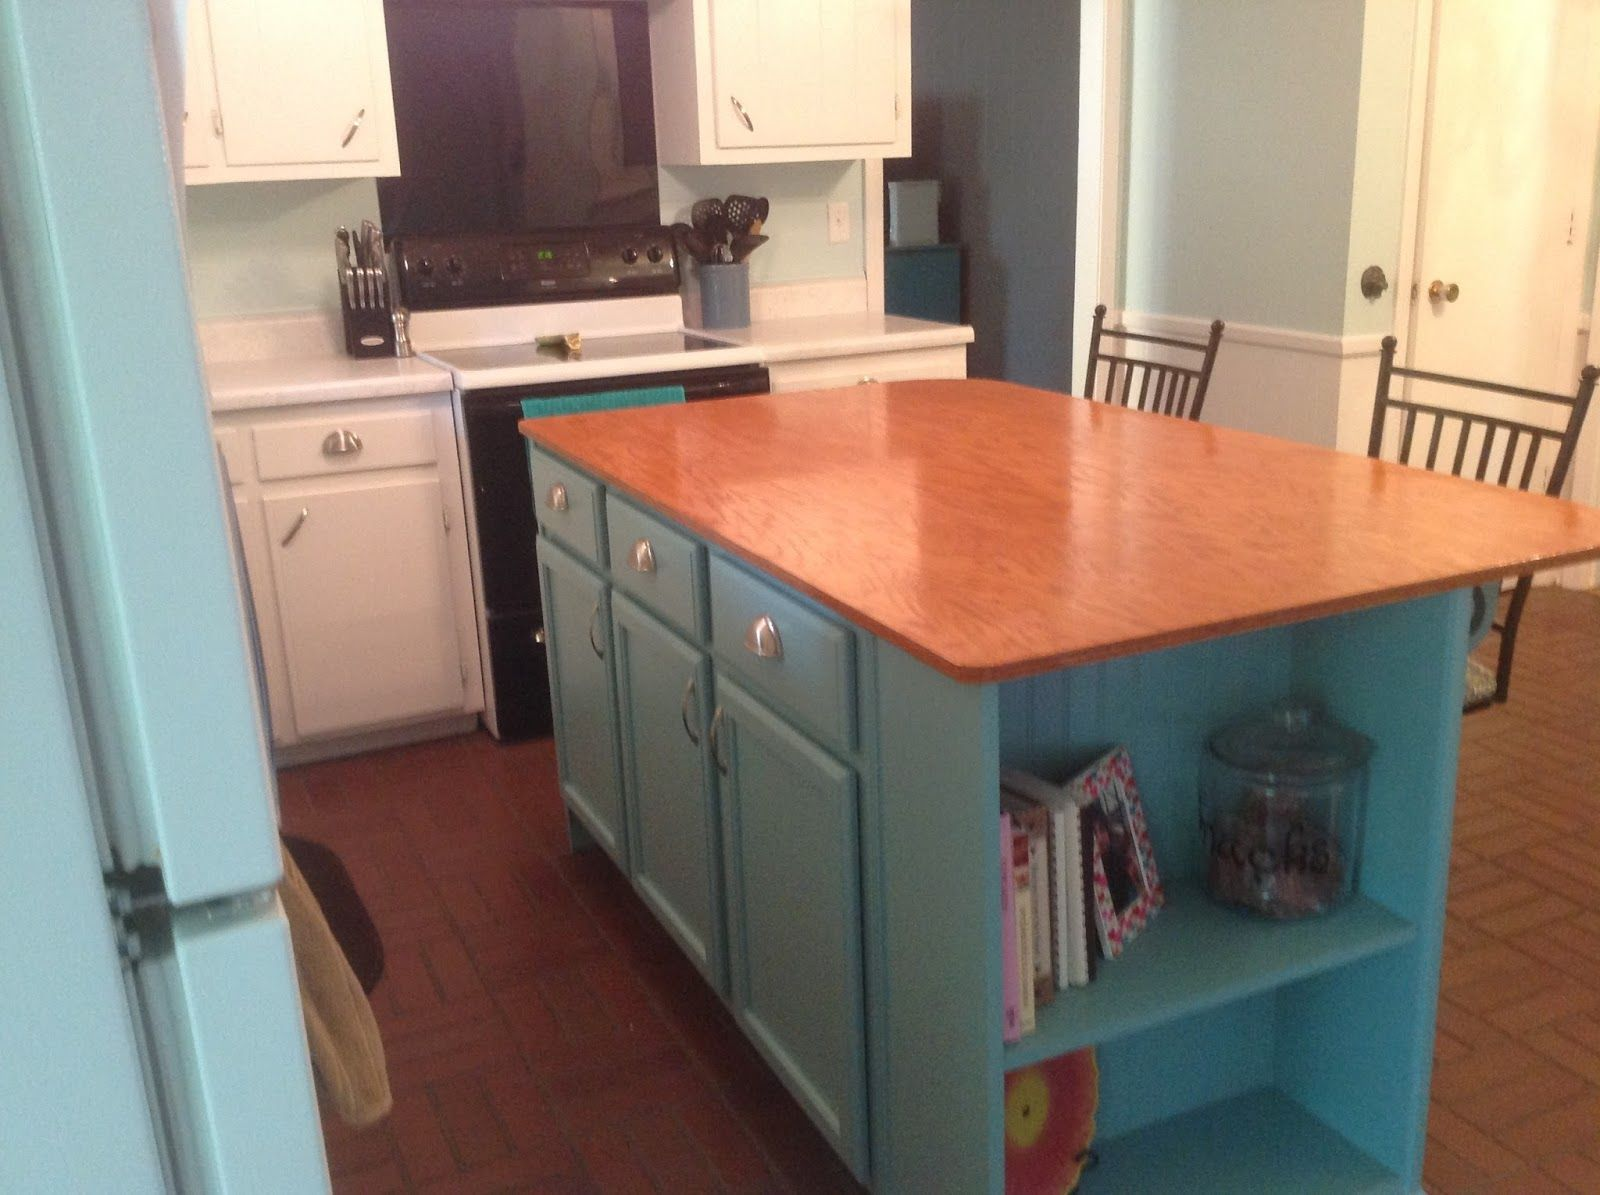 Ever since we moved into our house in May, I have wanted to add an island to our kitchen. Our kitchen had a very open floorplan, ...